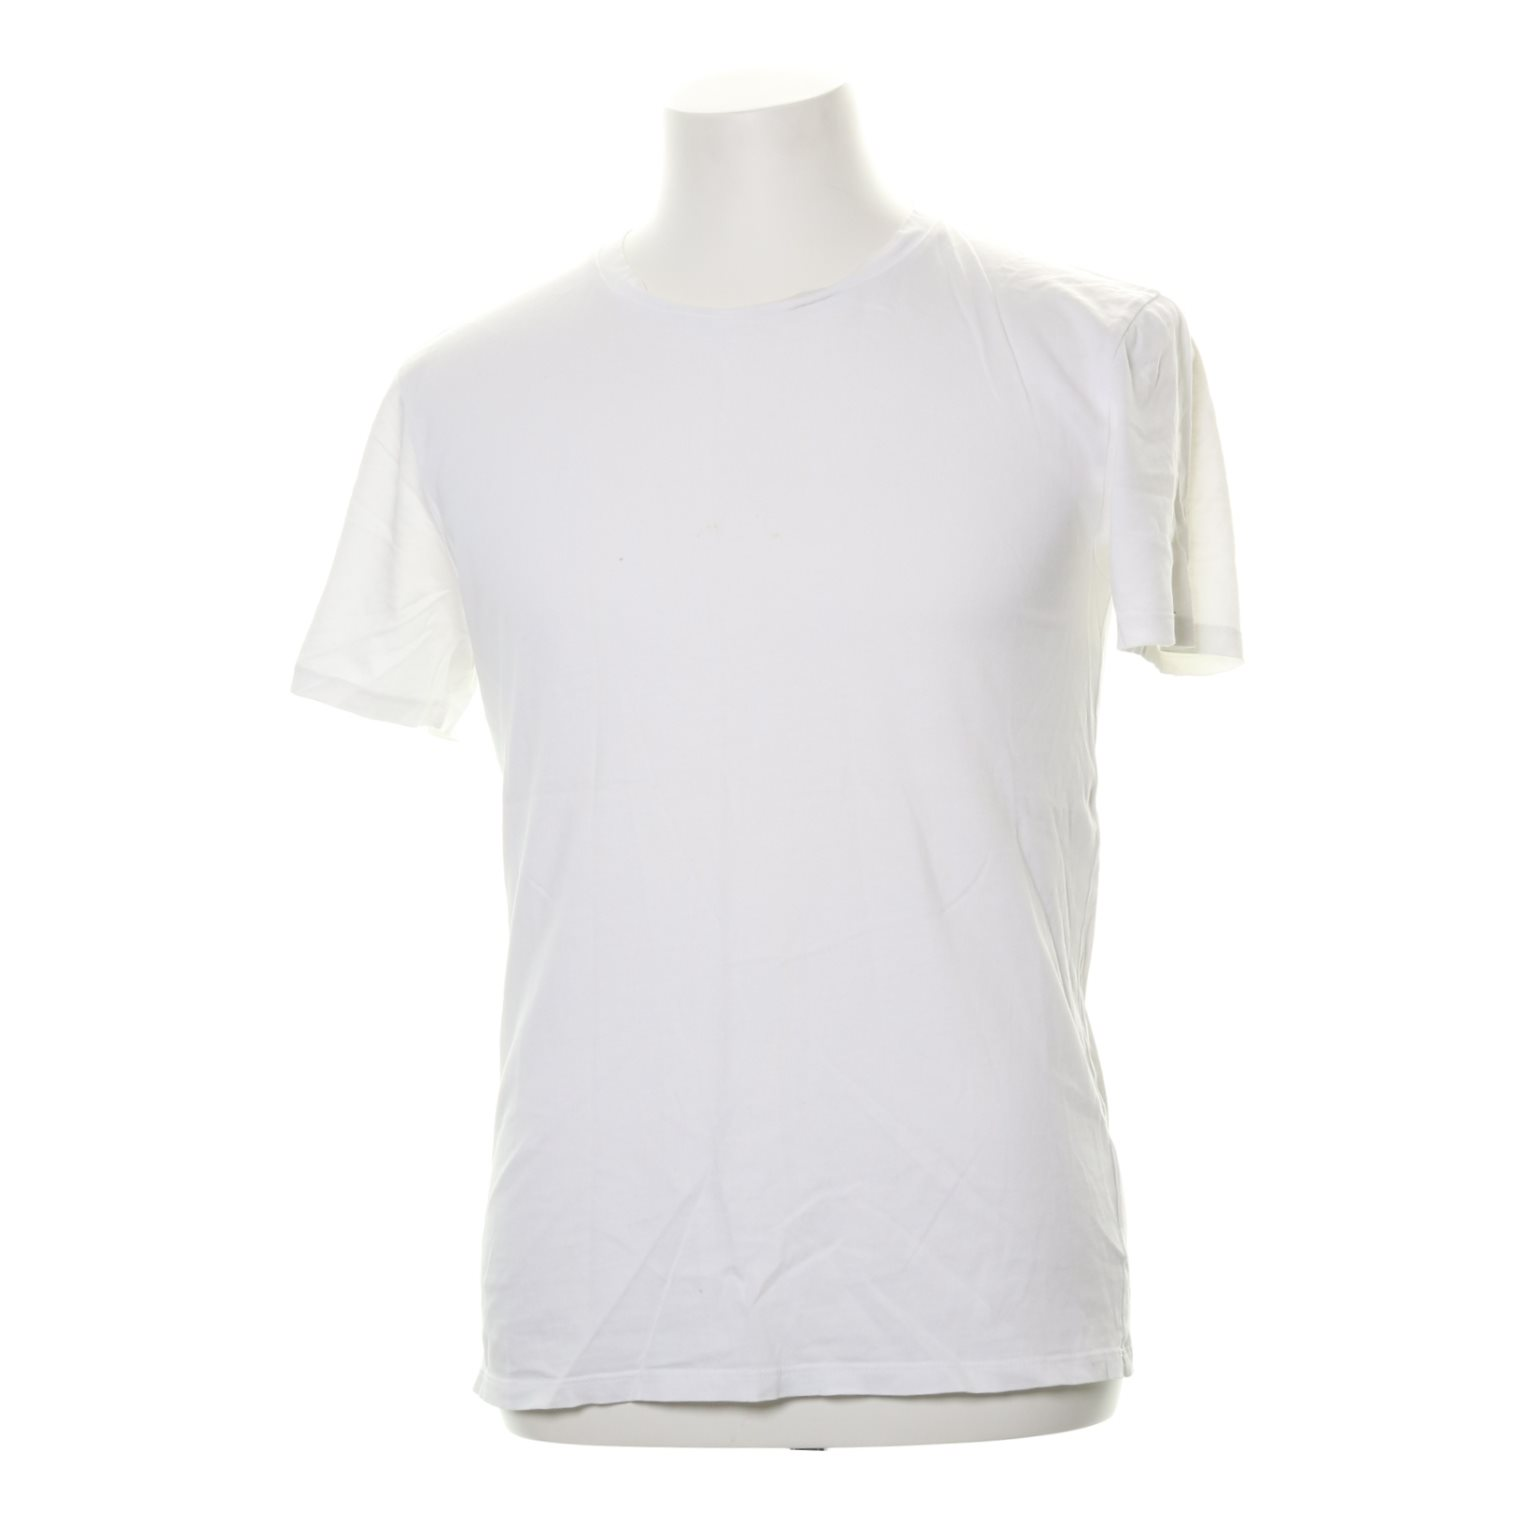 Acne Studios, T-shirt, Strl: M, Measure, Vit